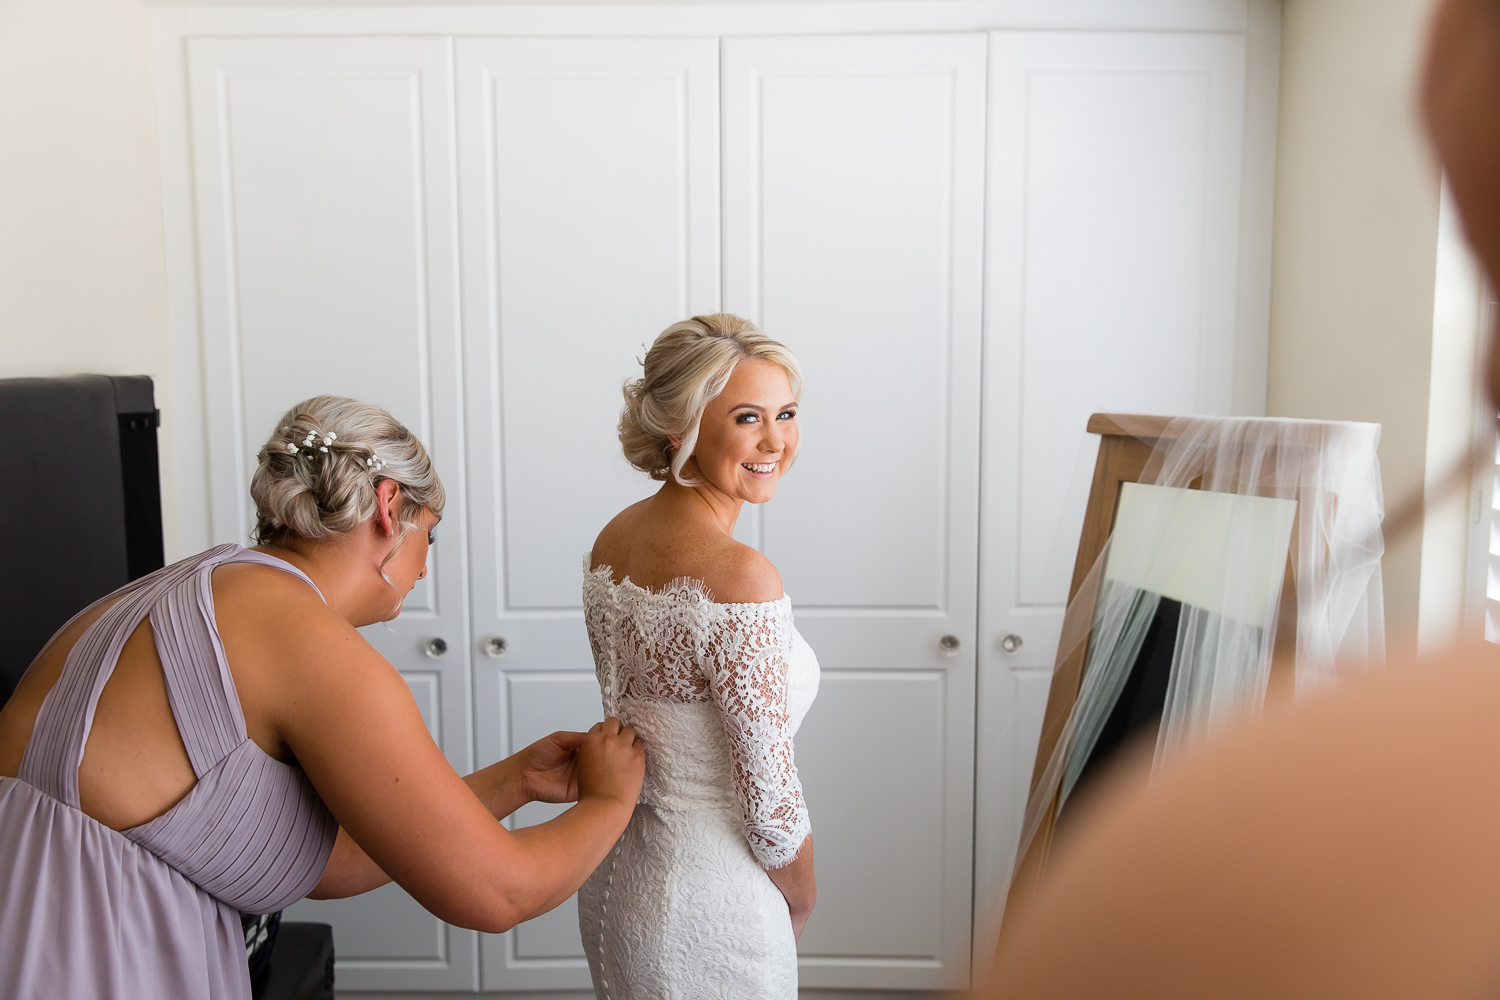 Buckinghamshire Wedding Photographer - Bridal Prep Smiles